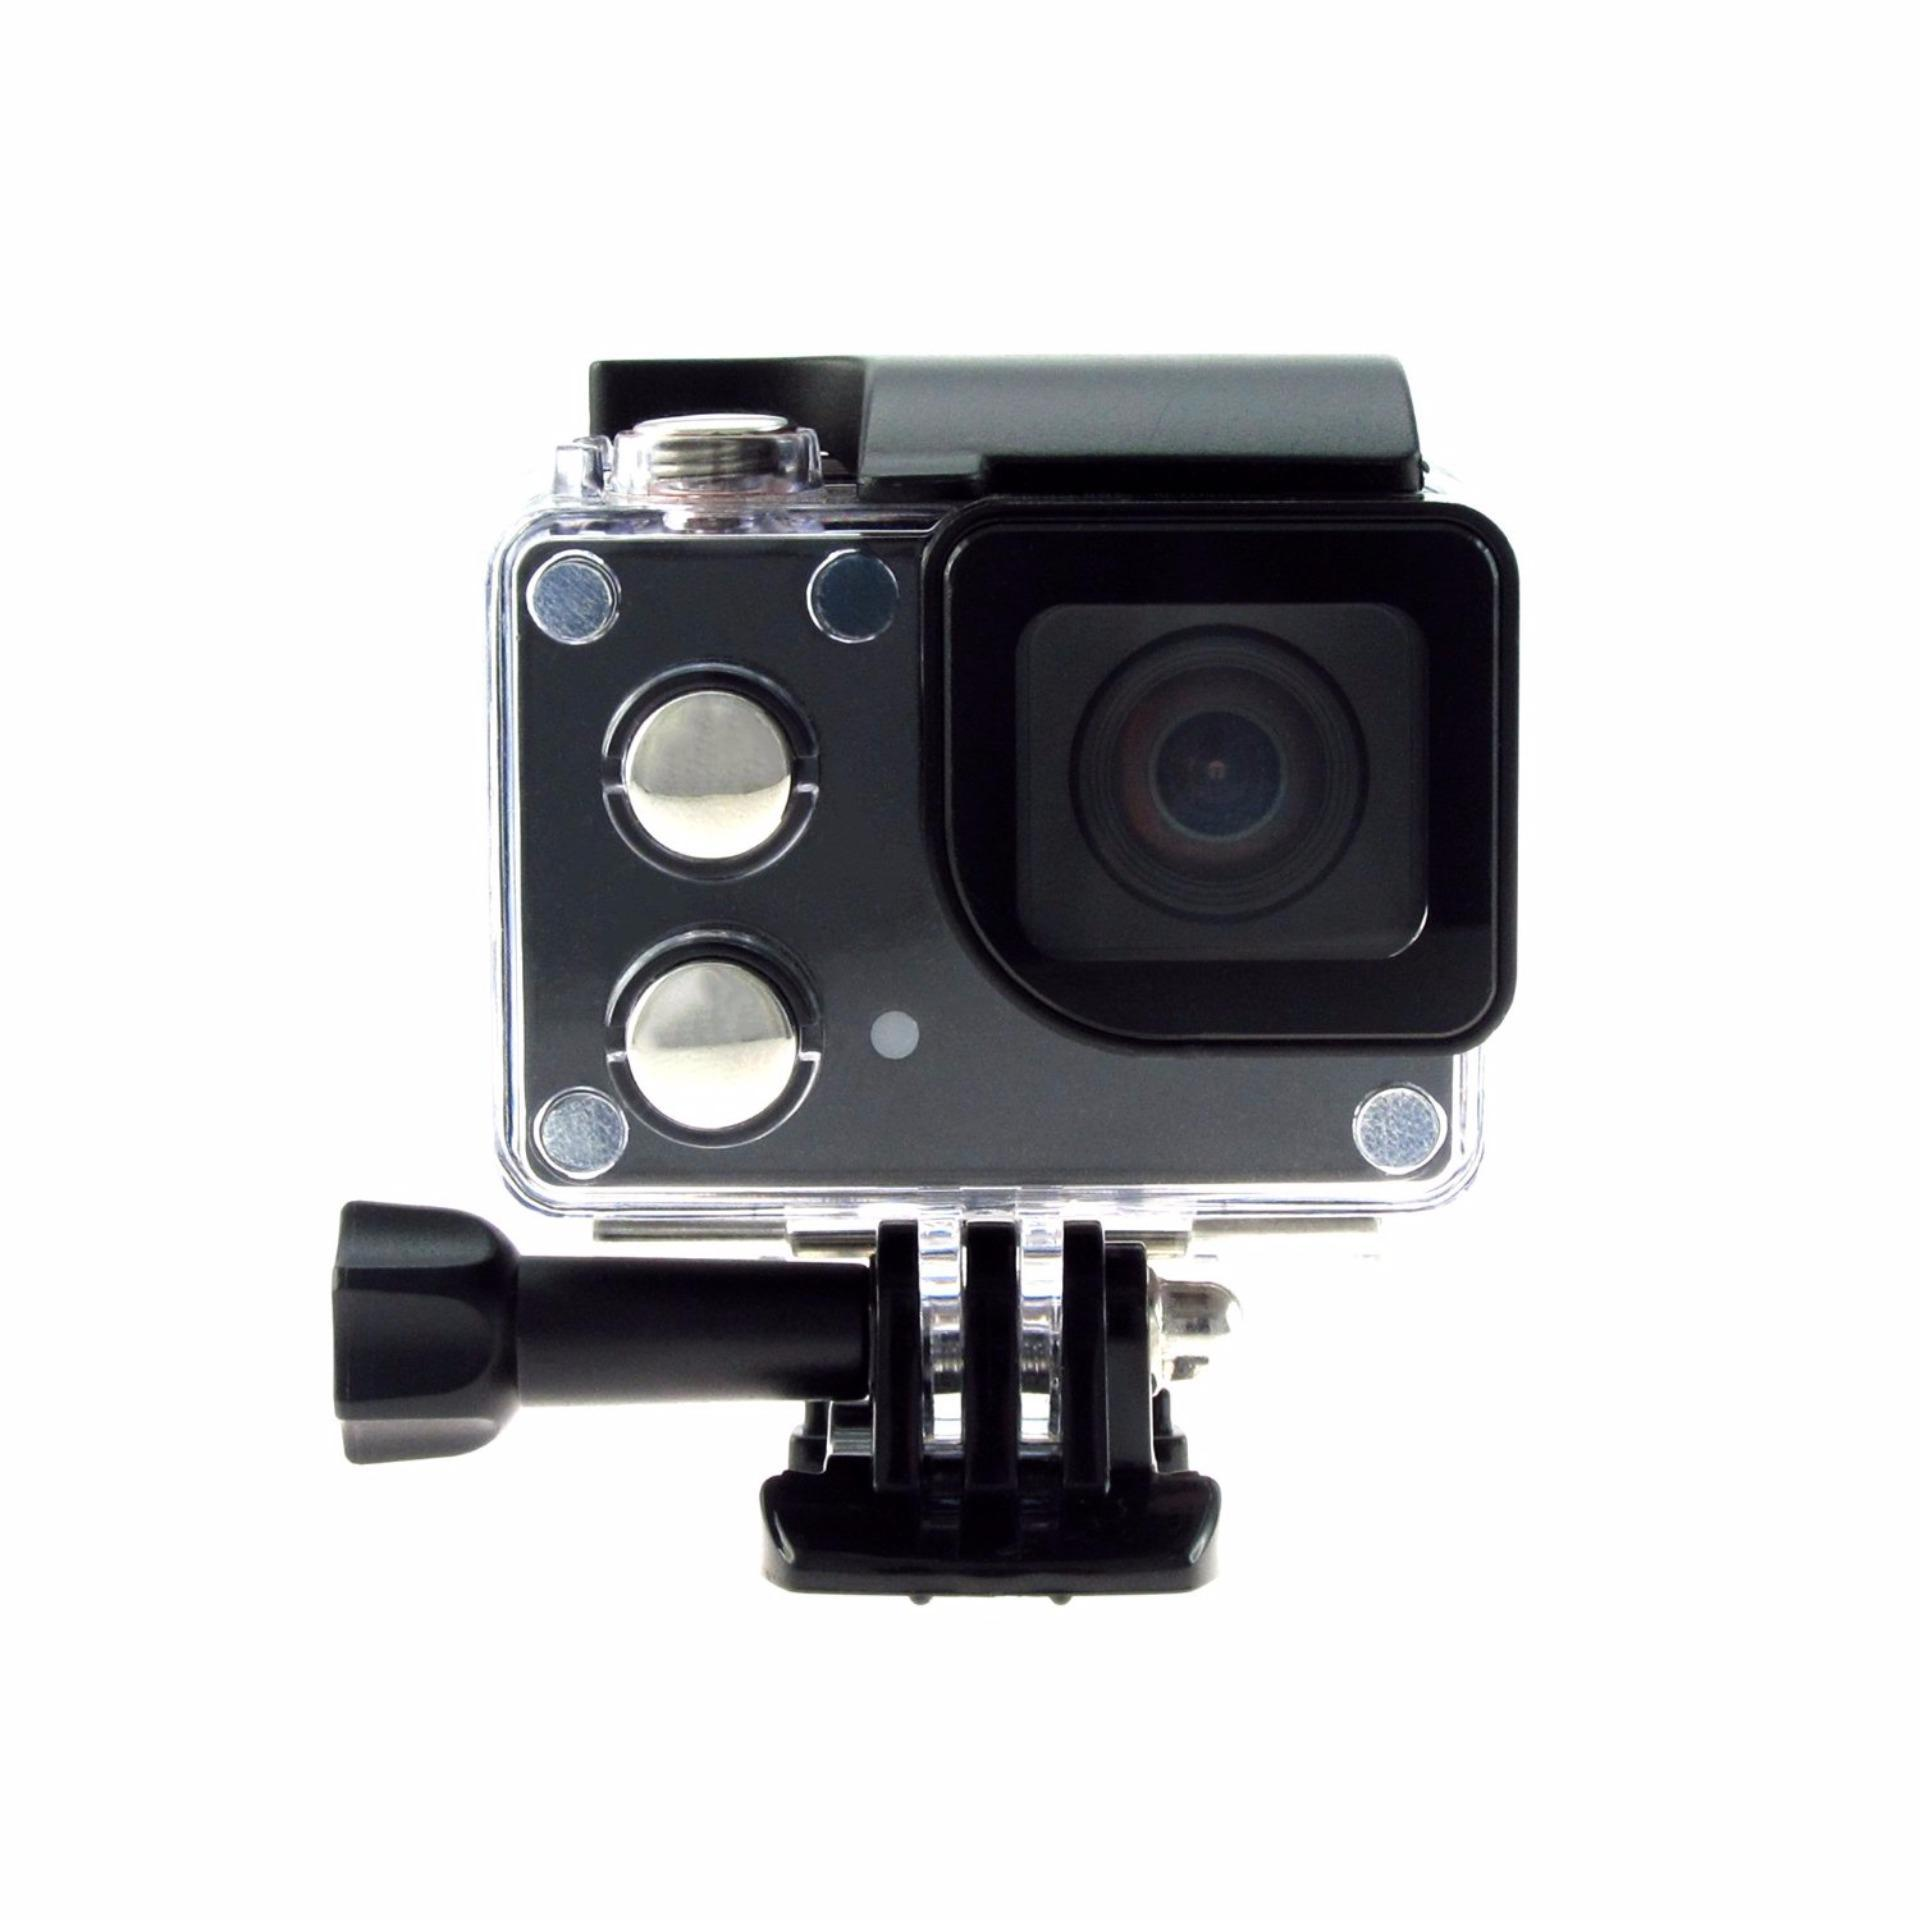 ISAW WING FULL HD ACTION CAMERA WITH FREE GIFTS